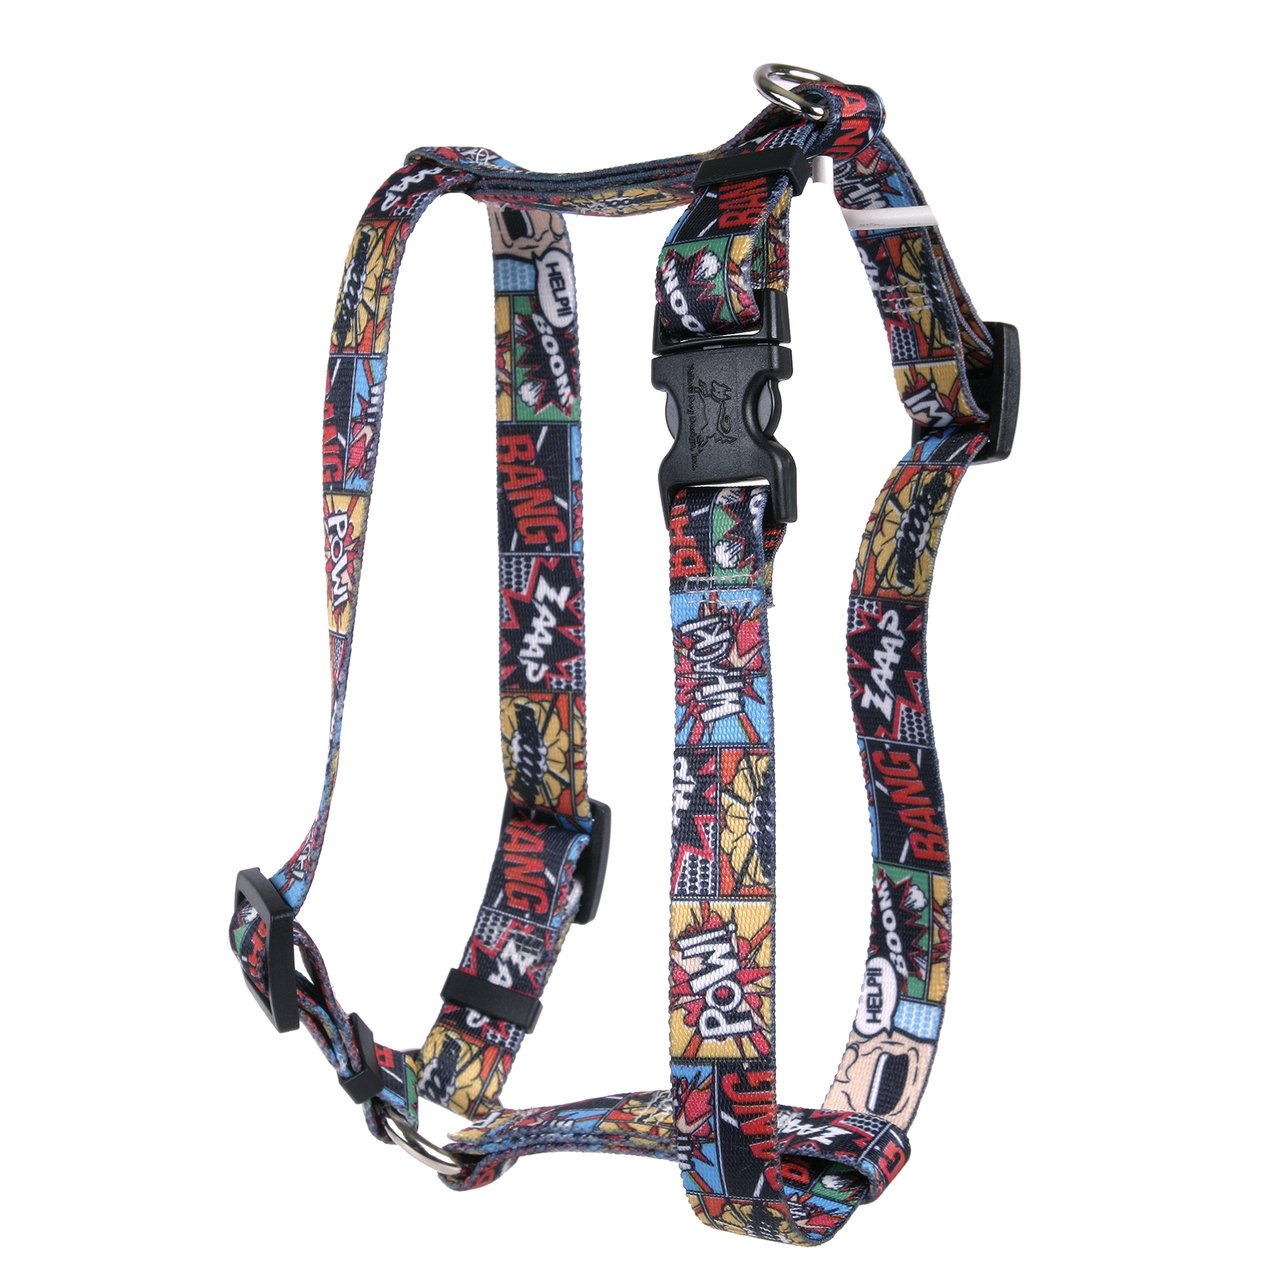 Yellow Dog Design Vintage Comics Roman Style H Dog Harness-X-Small-3/8 and fits Chest 8 to 14''